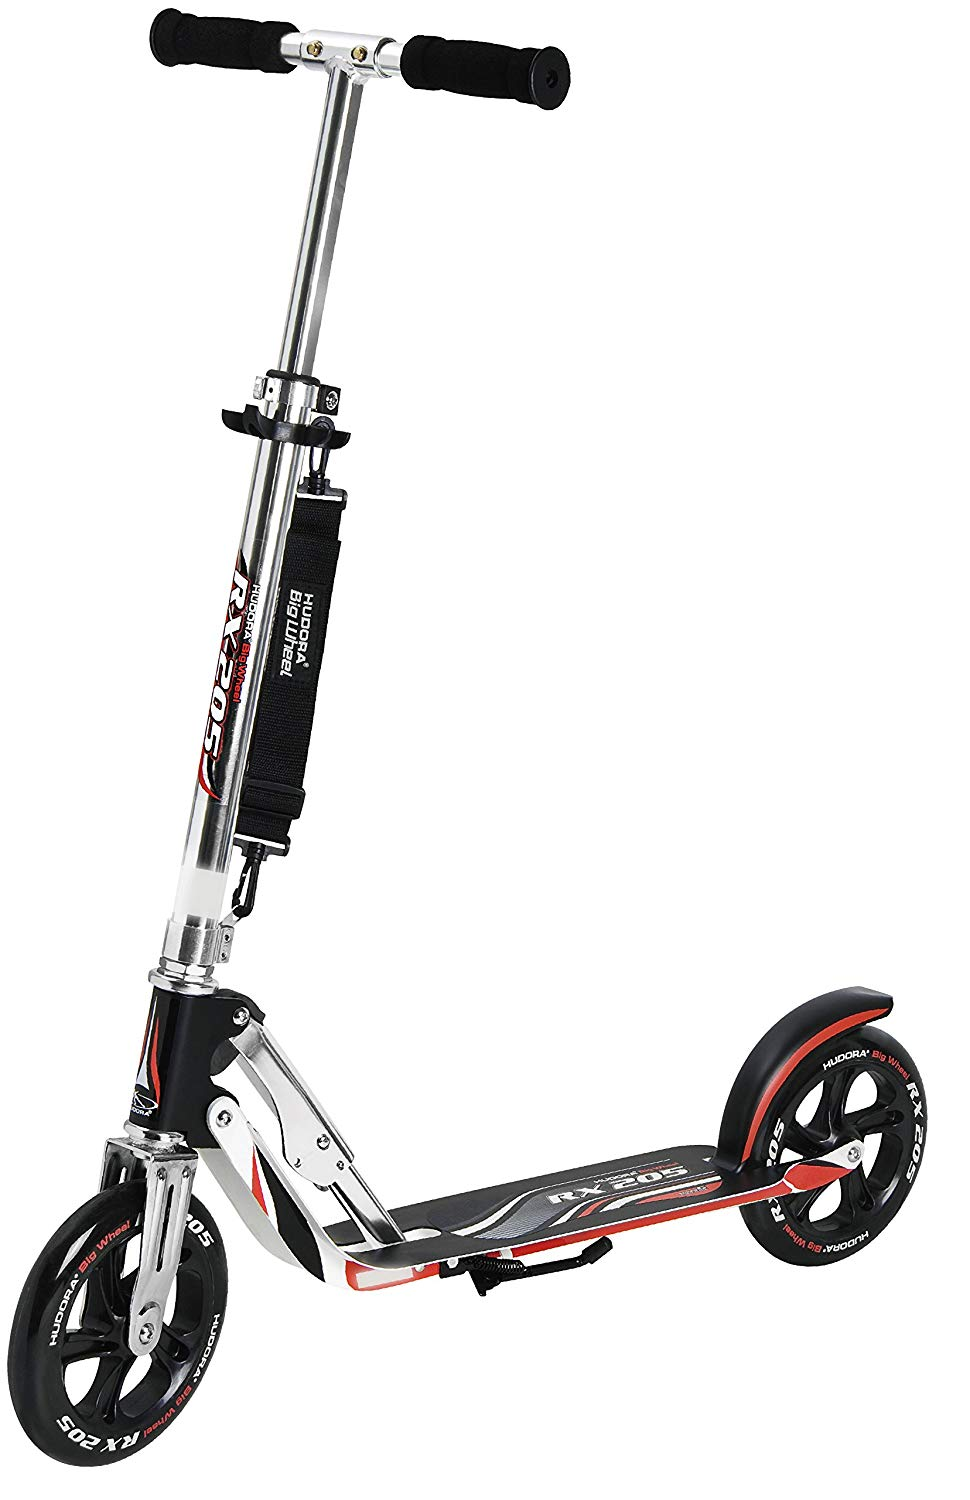 205 Adult Folding Kick Scooter- 2 Big PU Wheels 205 mm, Adjustable Bar,Reinforced Deck